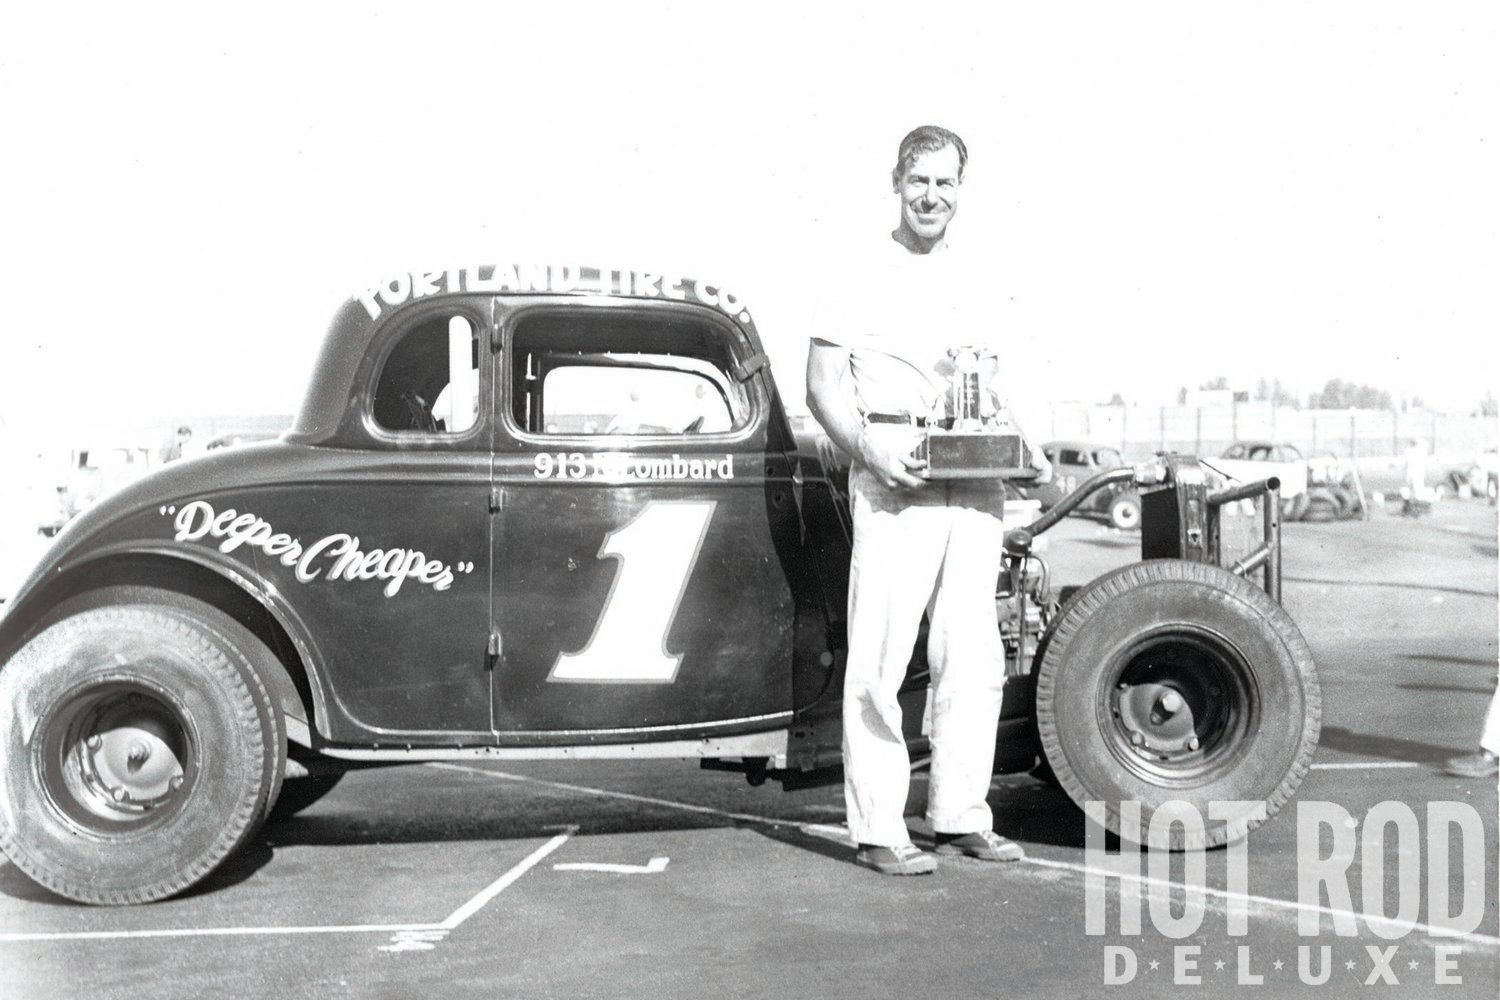 1952: Clarence Smith, who had fielded some of the Northwest's hottest midgets in the '40s and '50s, gets his chance to drive. Smitty was Jack's mentor. Note the dual tires front and rear on the passenger side. The coupe was powered by a brand-new 317-inch Lincoln overhead with two backdraft two-barrel carbs. Smitty was the Oregon hardtop racing champ that year. He was quite the innovator.